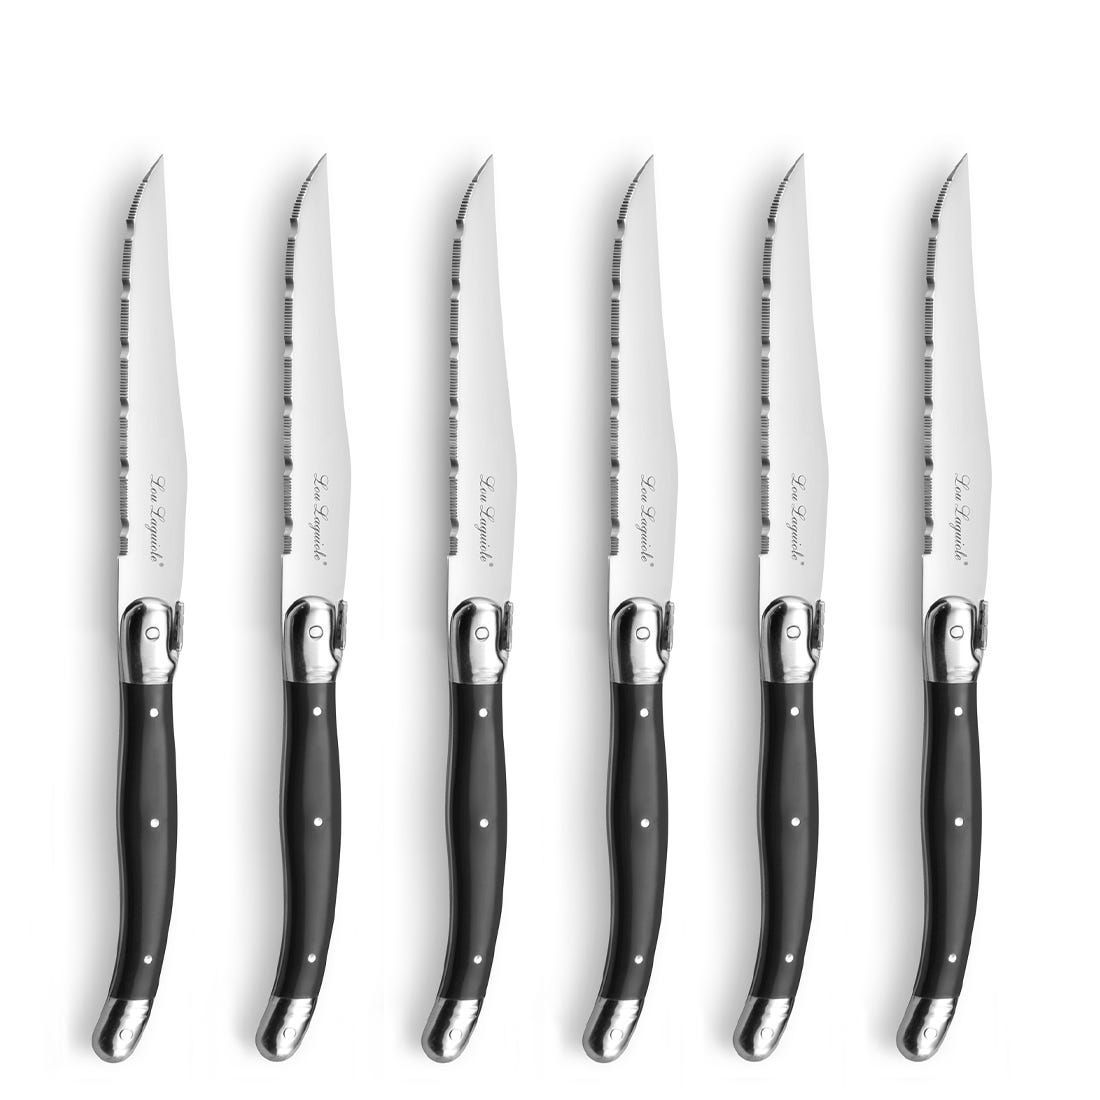 Lou Laguiole Steak Knife Set 6-pieces anthracite 2511 TRADITION